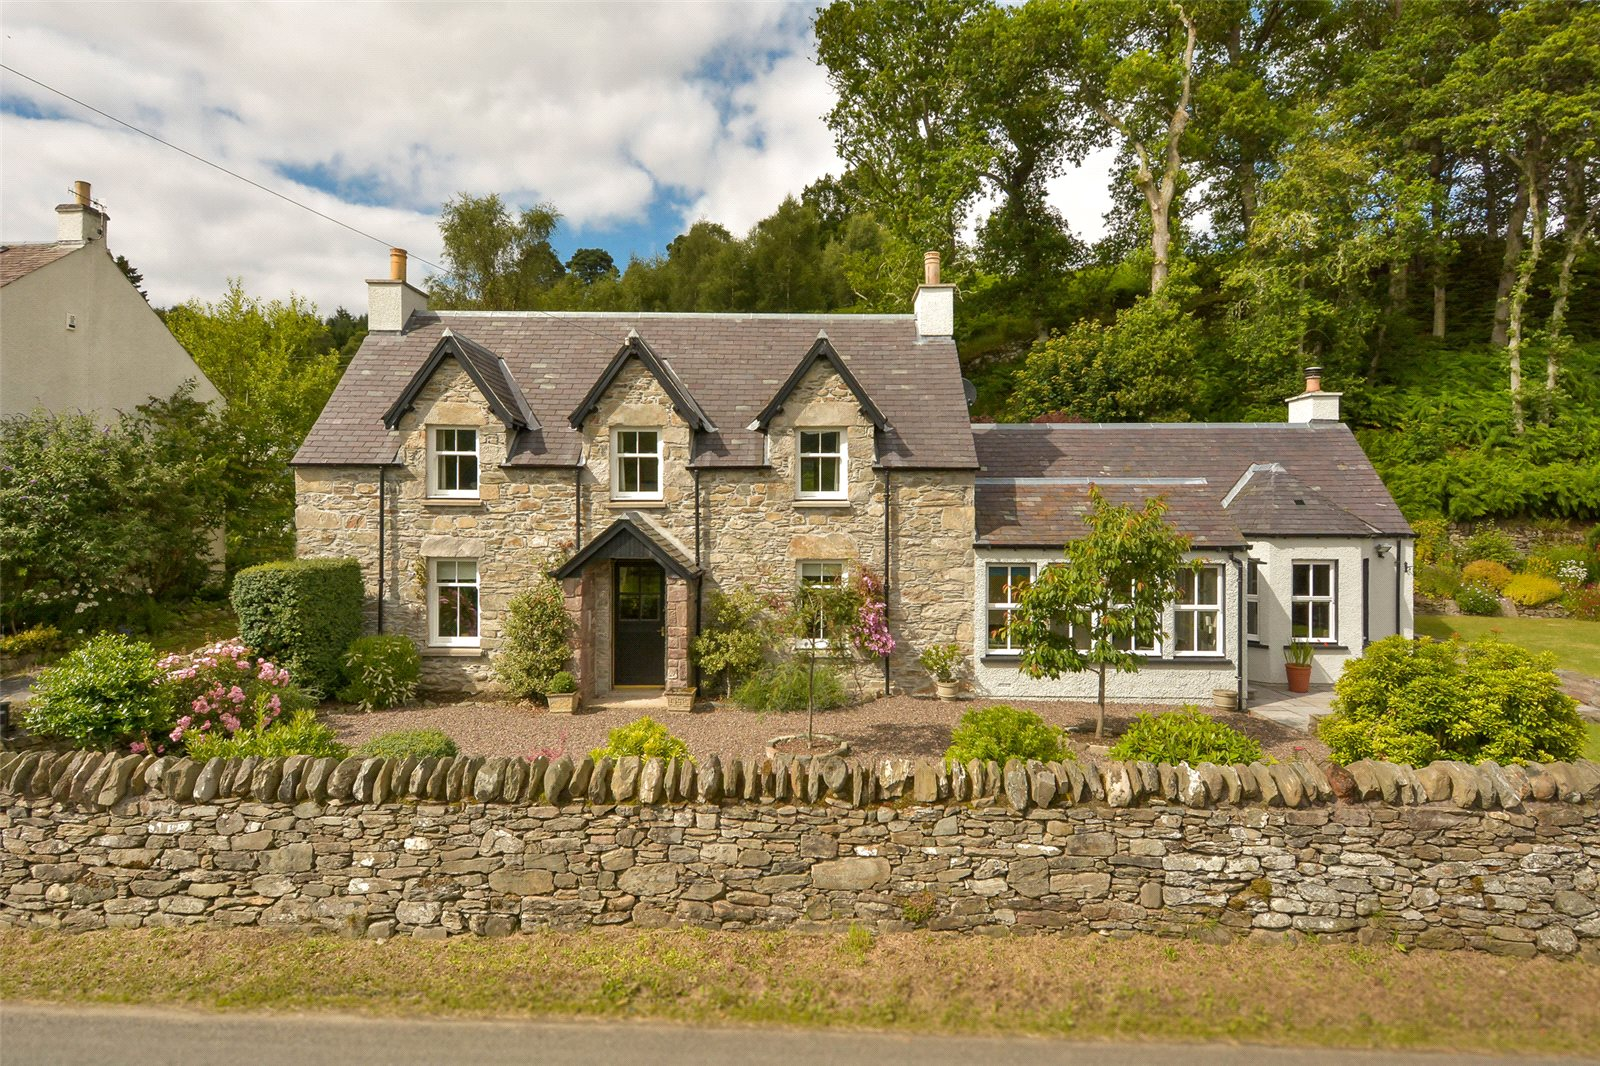 3 Bedrooms Detached House for sale in Carnliath, Strathtay, Pitlochry, Perthshire, PH9